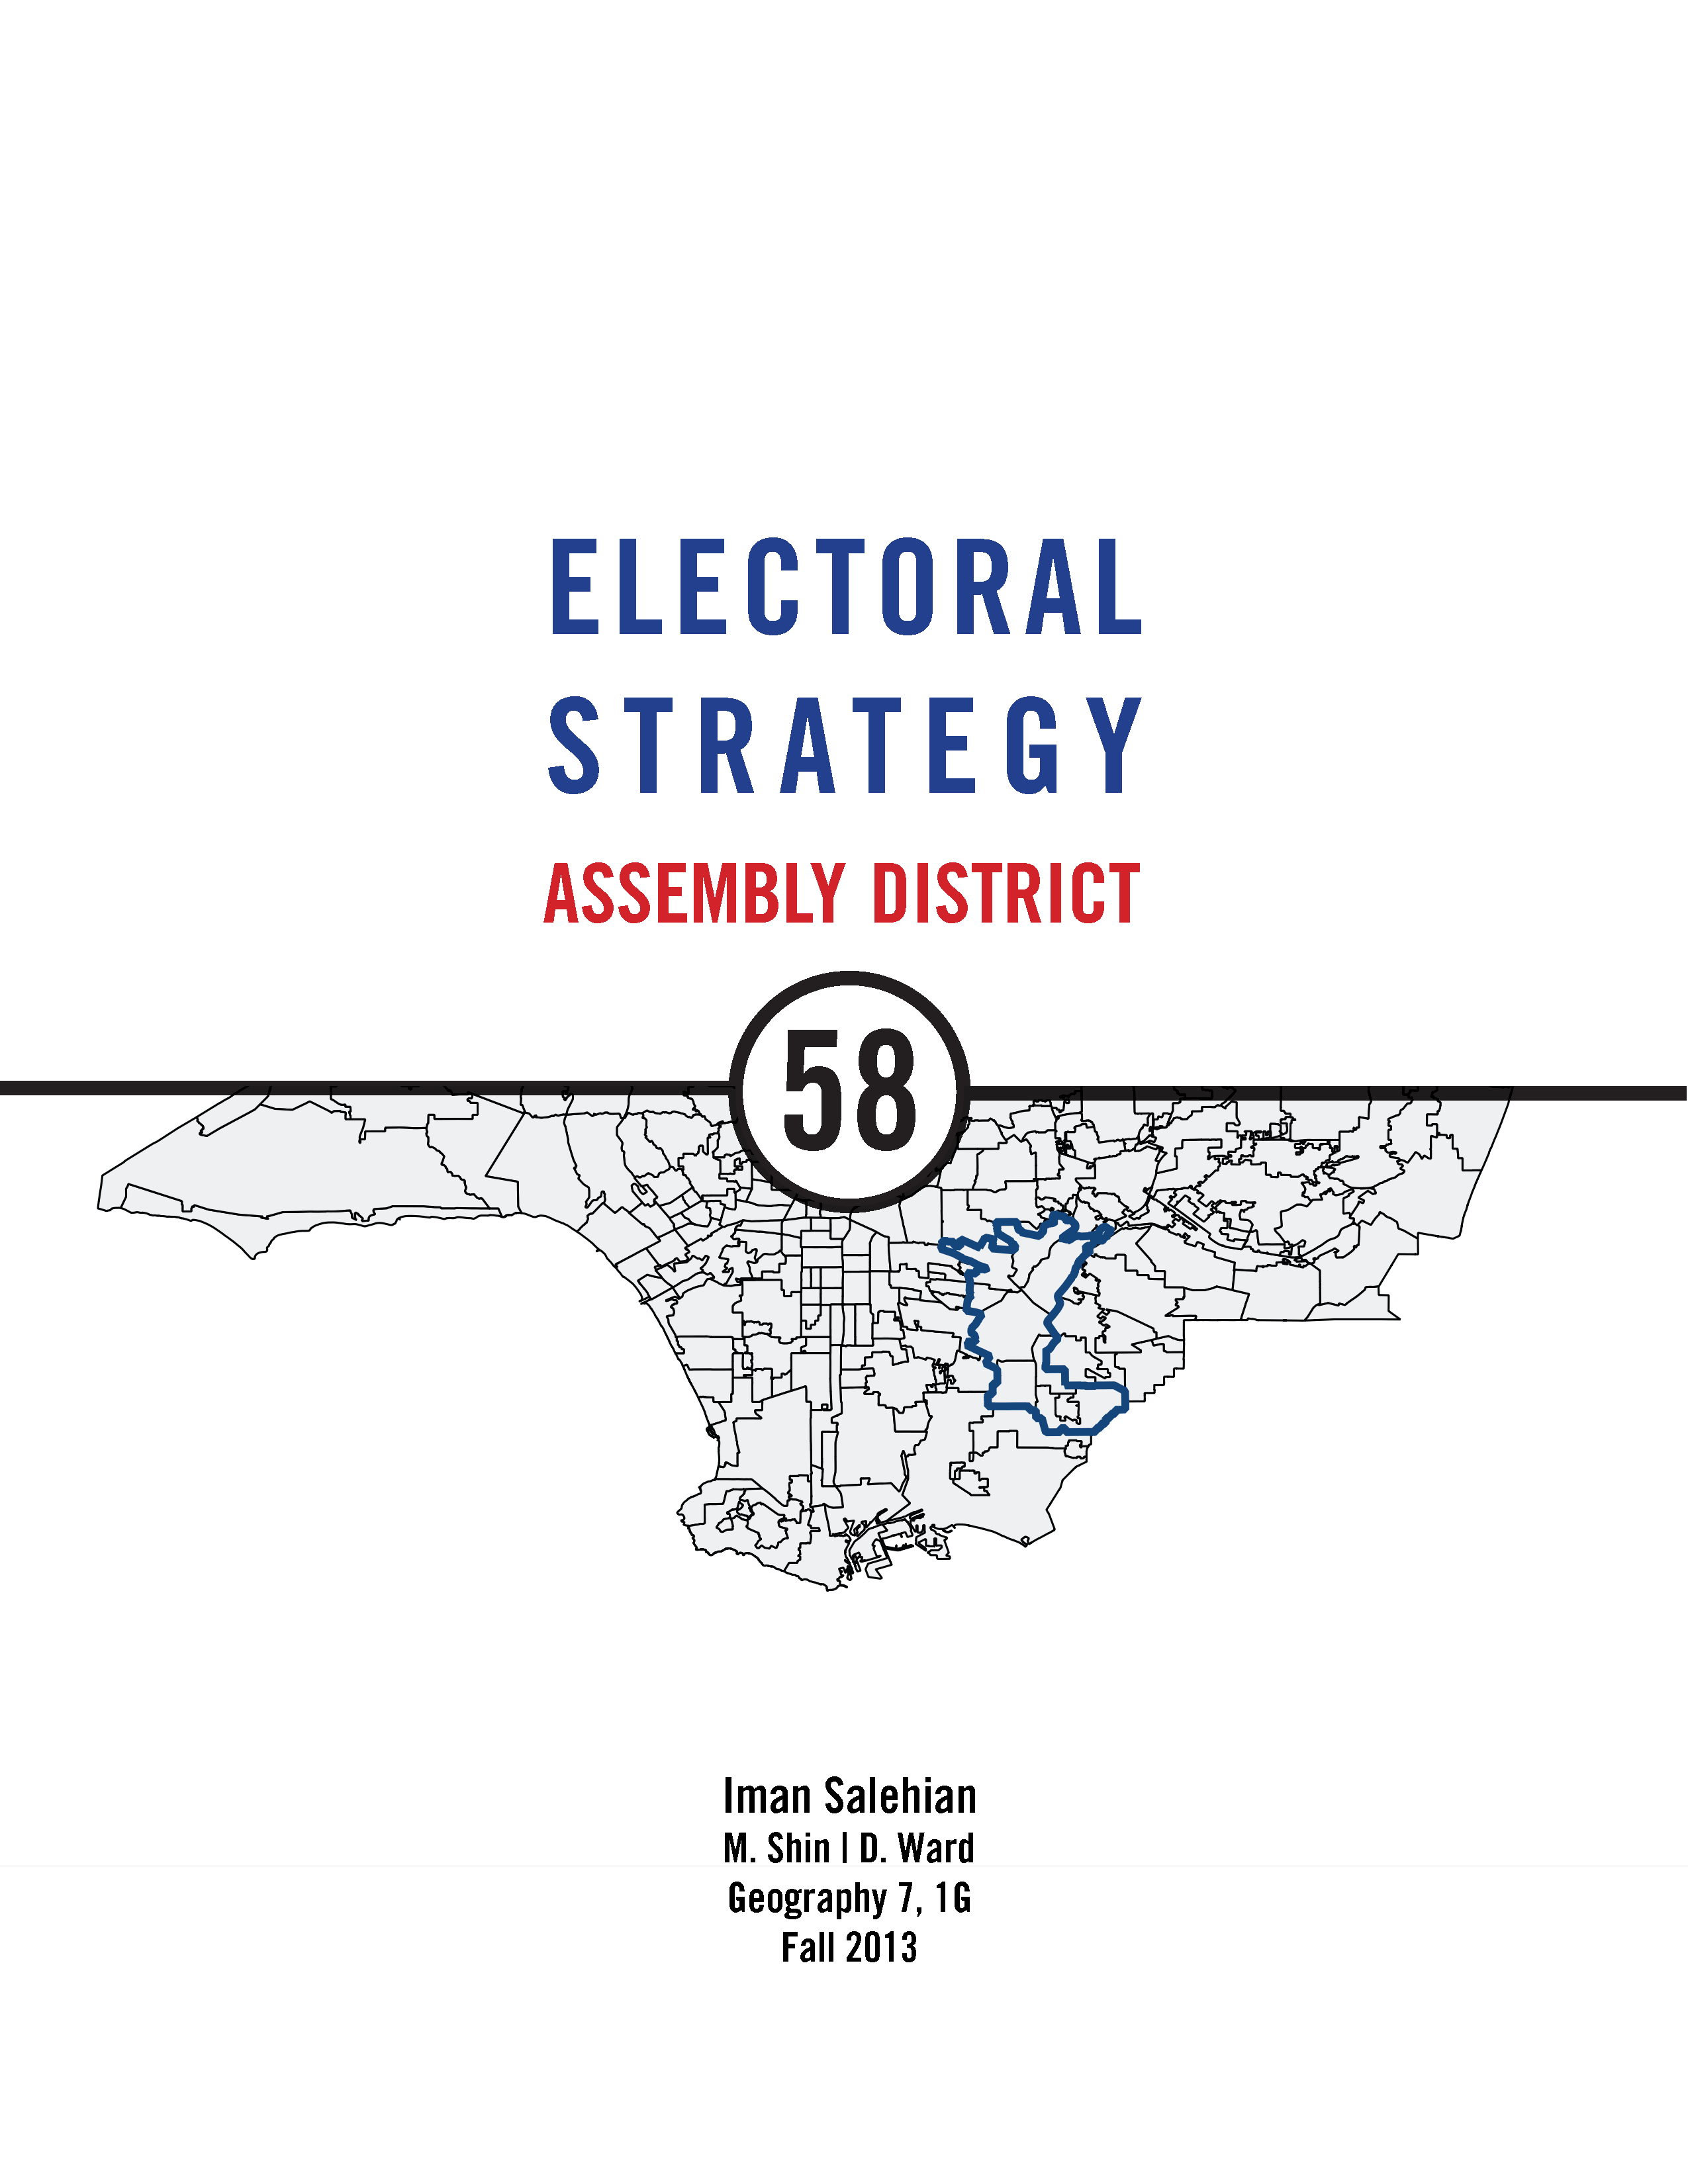 Electoral Strategy